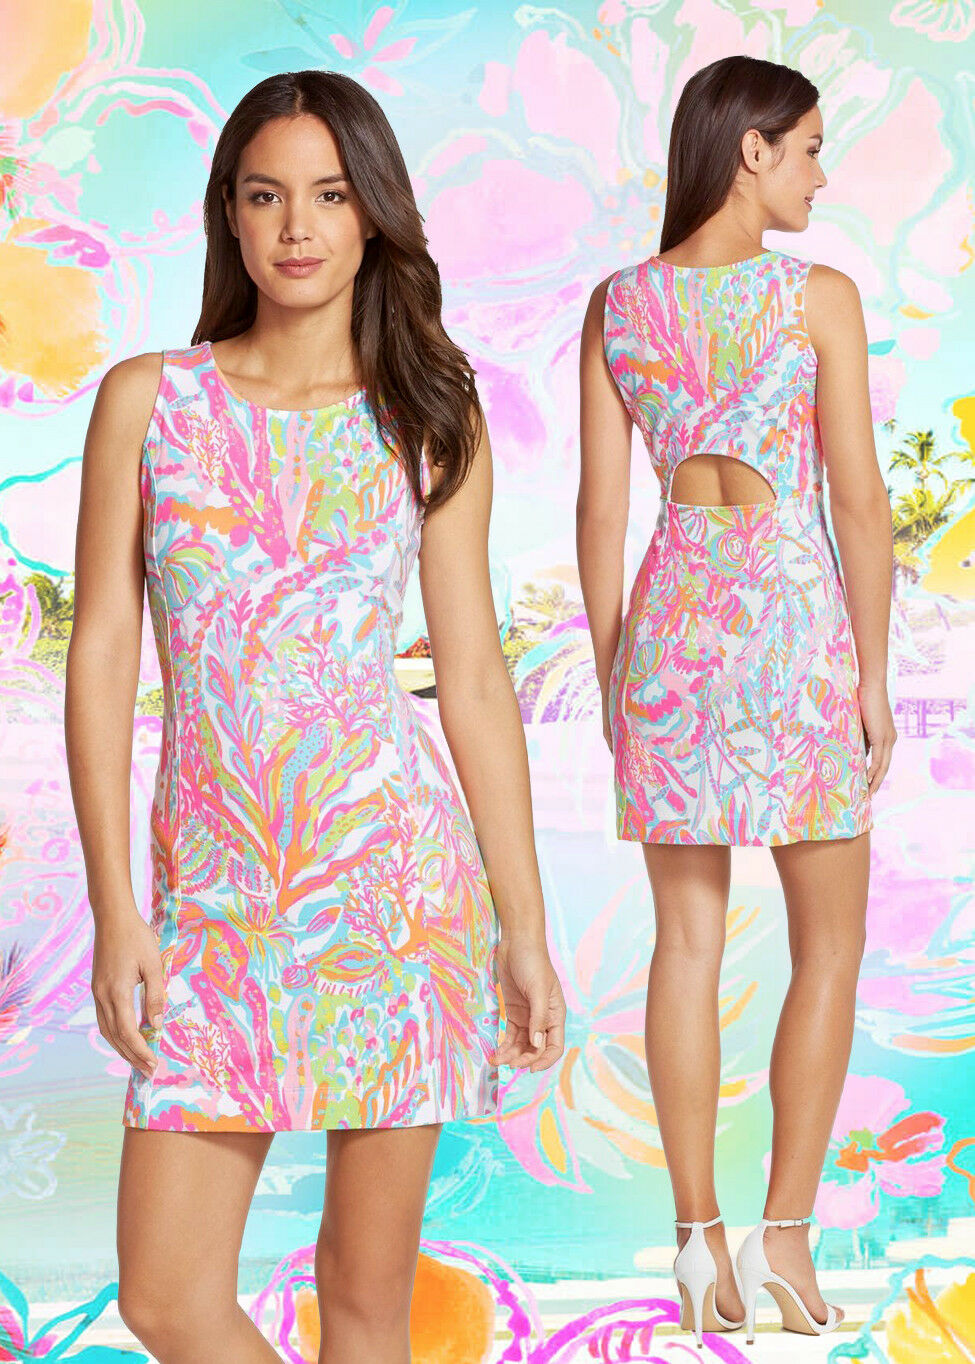 355eca1edb Lilly Pulitzer Whiting Scuba To Cuba French Terry Cut Out Shift Dress M